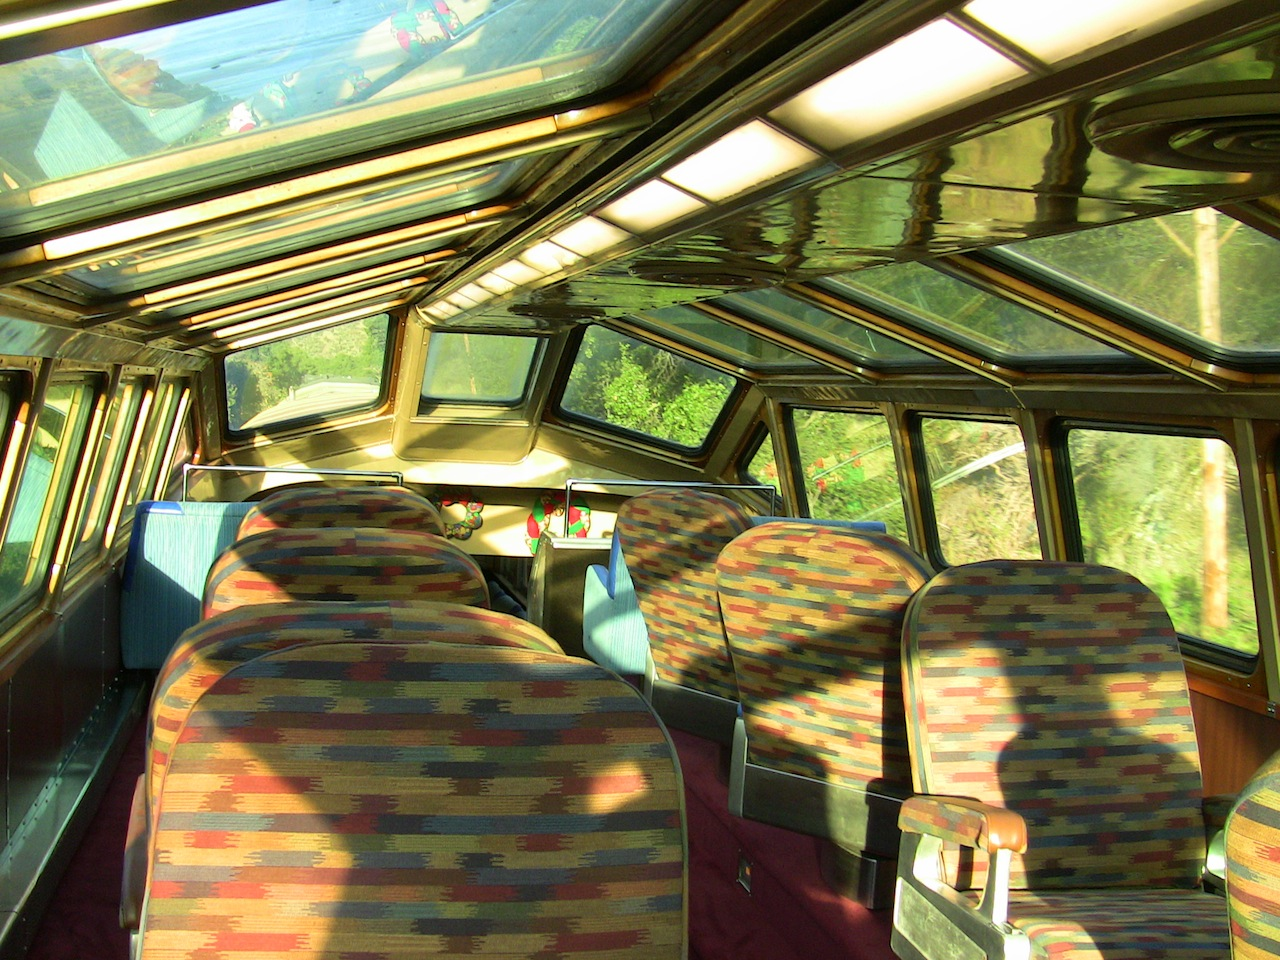 View from the Dome Car, Niles Canyon Railway